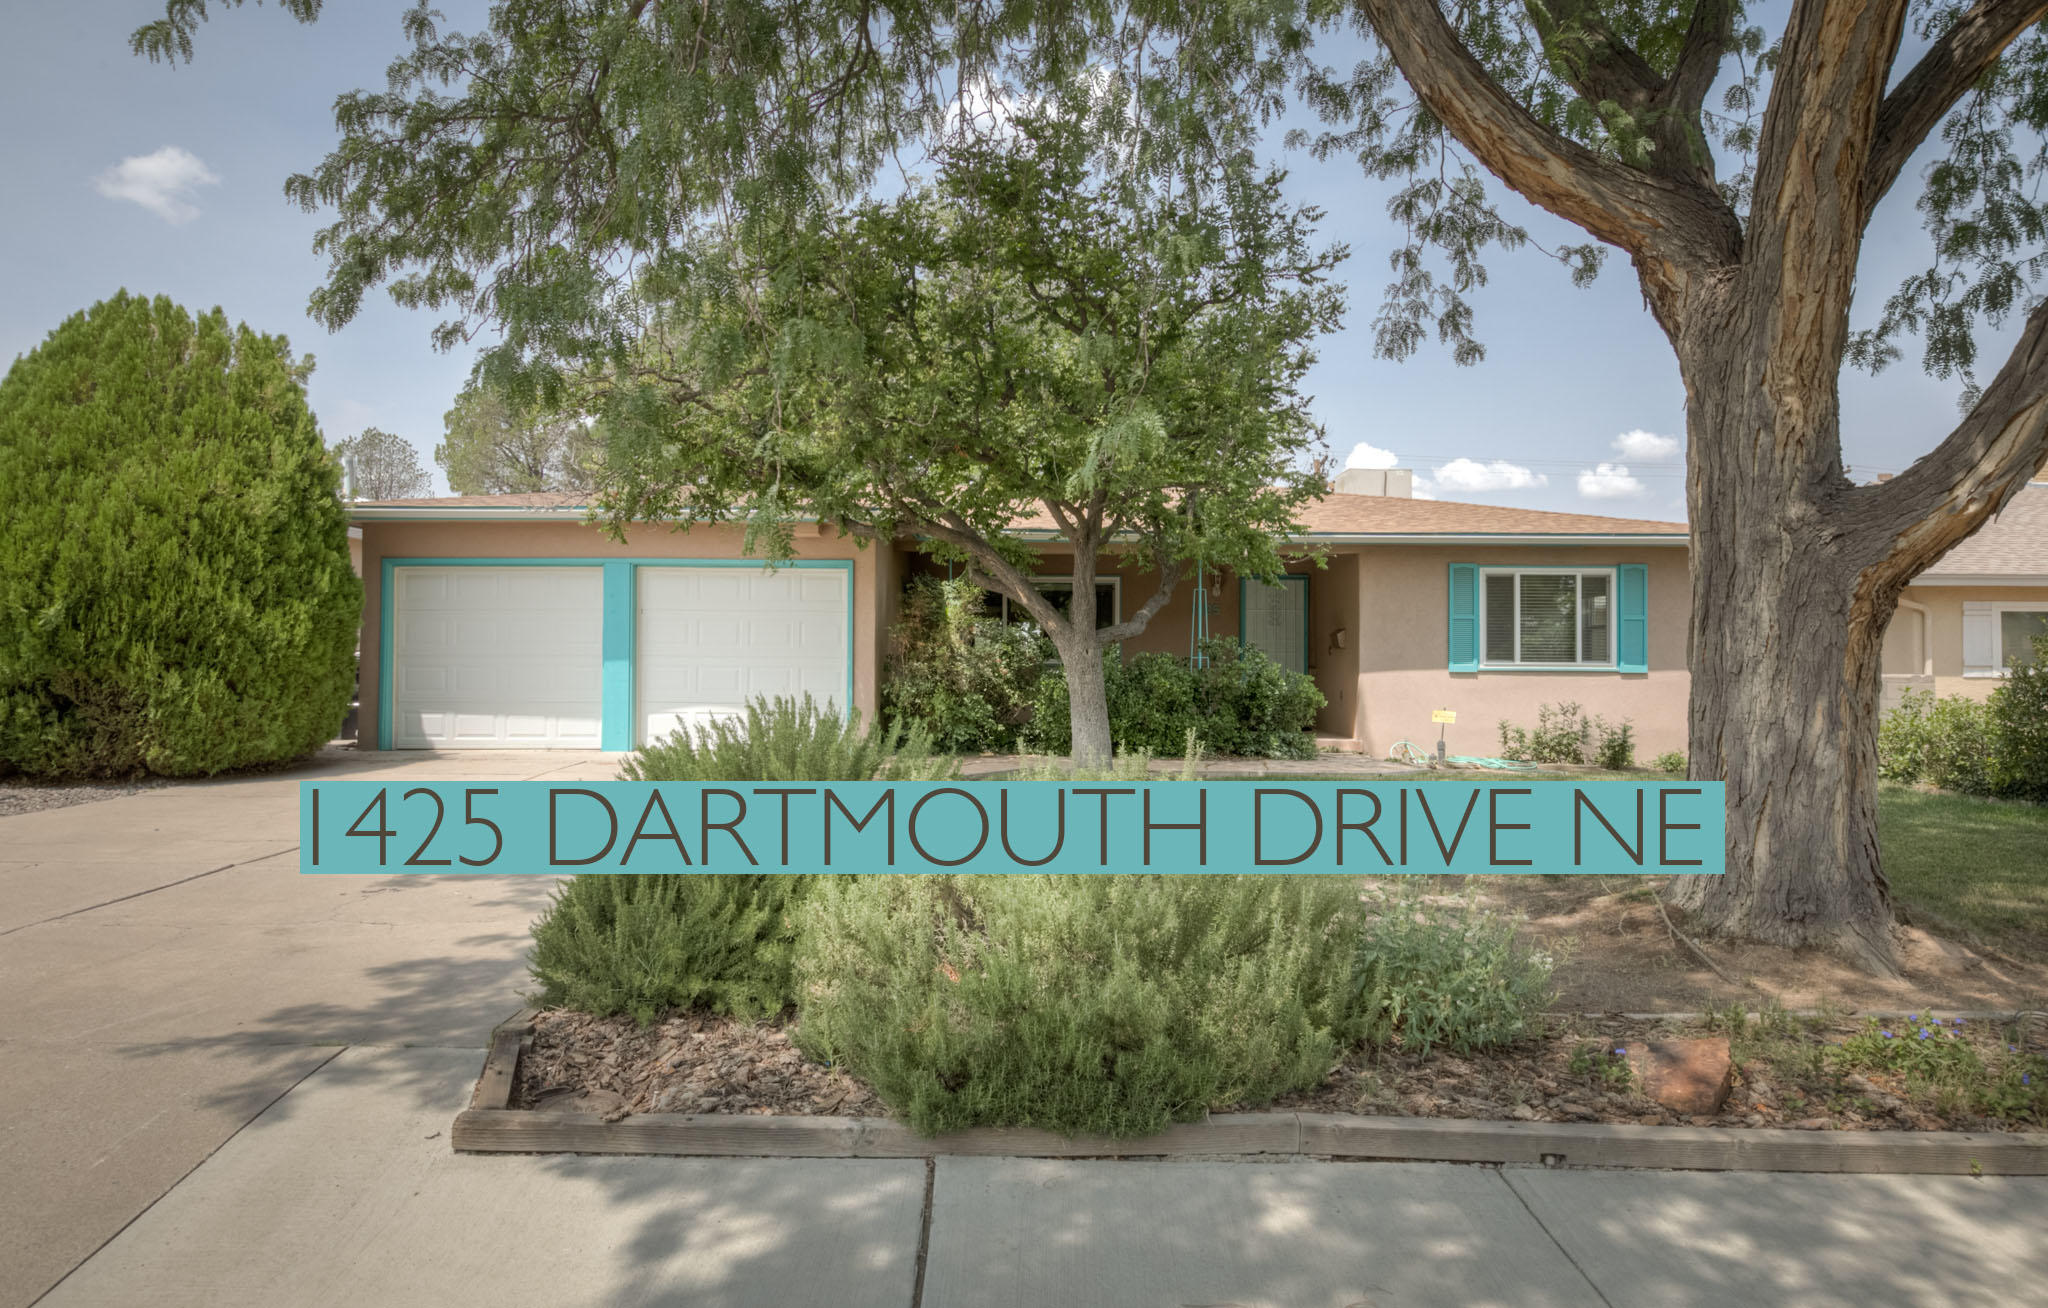 Well maintained Ranch in prime UNM location! Light, bright, white kitchen with all appliances, gas cooktop stove, vent hood, and trash compactor. Original hardwood floors shine throughout. Installed Alarm system, Brand new roof in 2019! 2 Living areas, one with cozy fireplace and built in storage. The large sunroom is flooded with natural light from French doors leading out to the spacious wooden patio. Private, walled backyard with planter areas and mature trees. Oversized 2 car garage with tons of storage. Close to Law and Med Schools, Summit and Netherwood Parks and UNM North Golf Course.